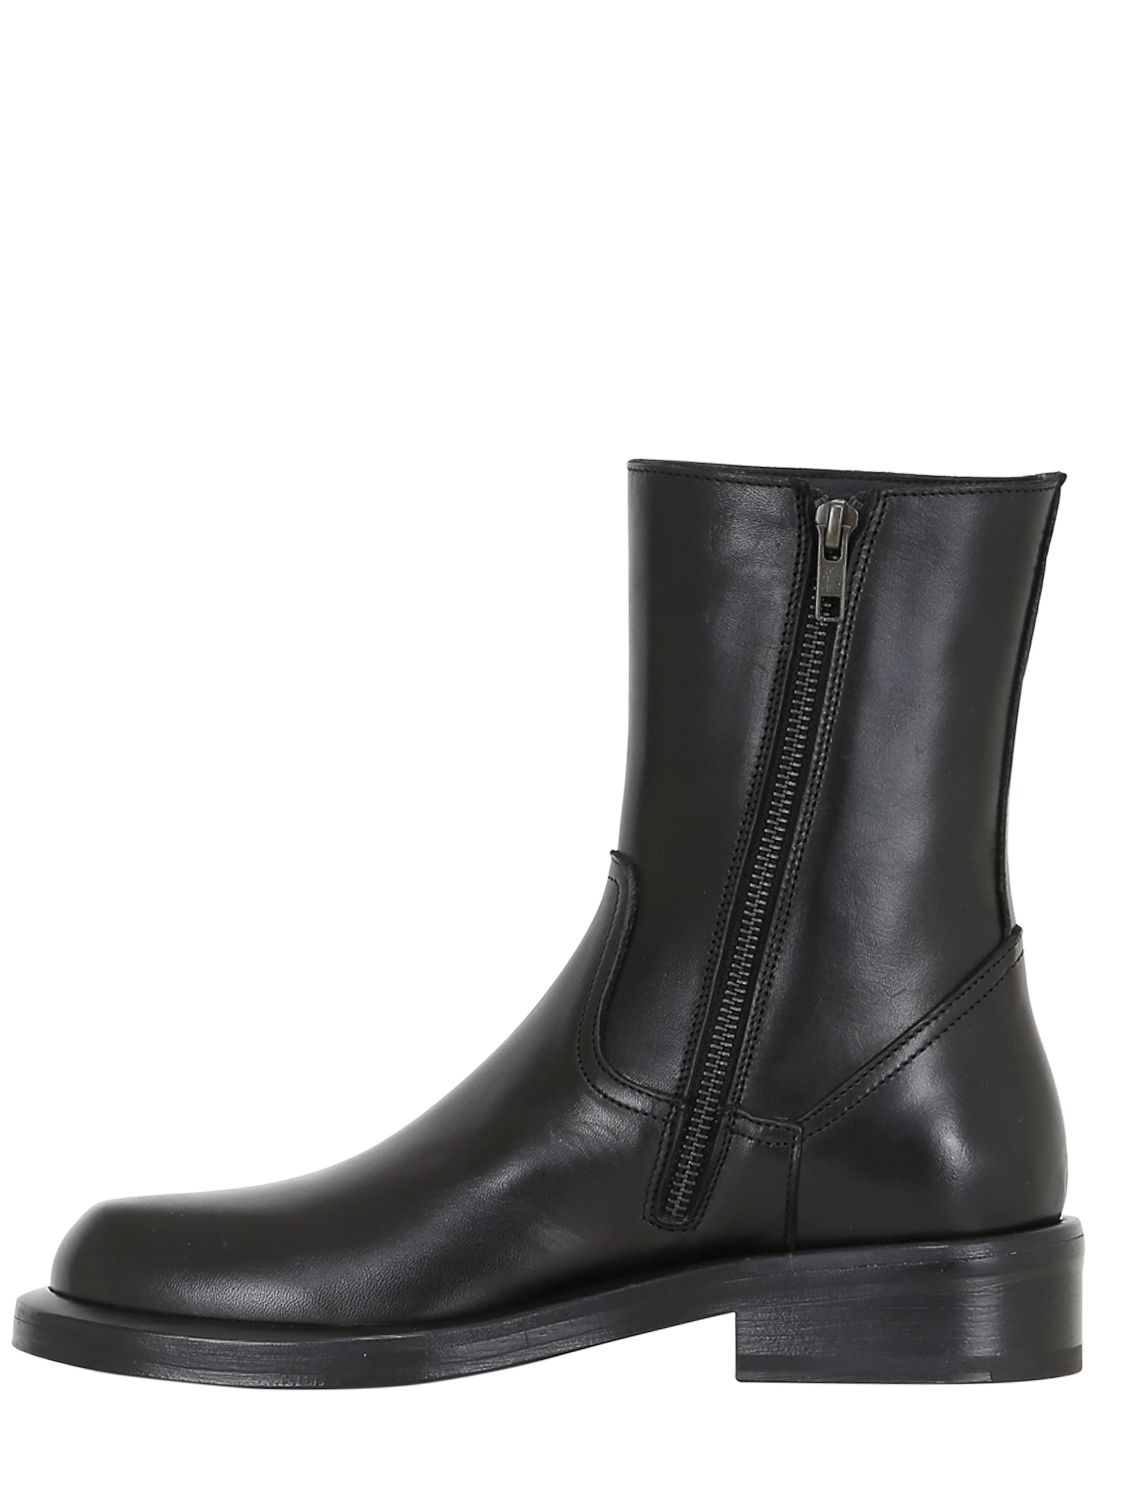 Ann Demeulemeester Black Heeled Ankle Boots x1QiNel